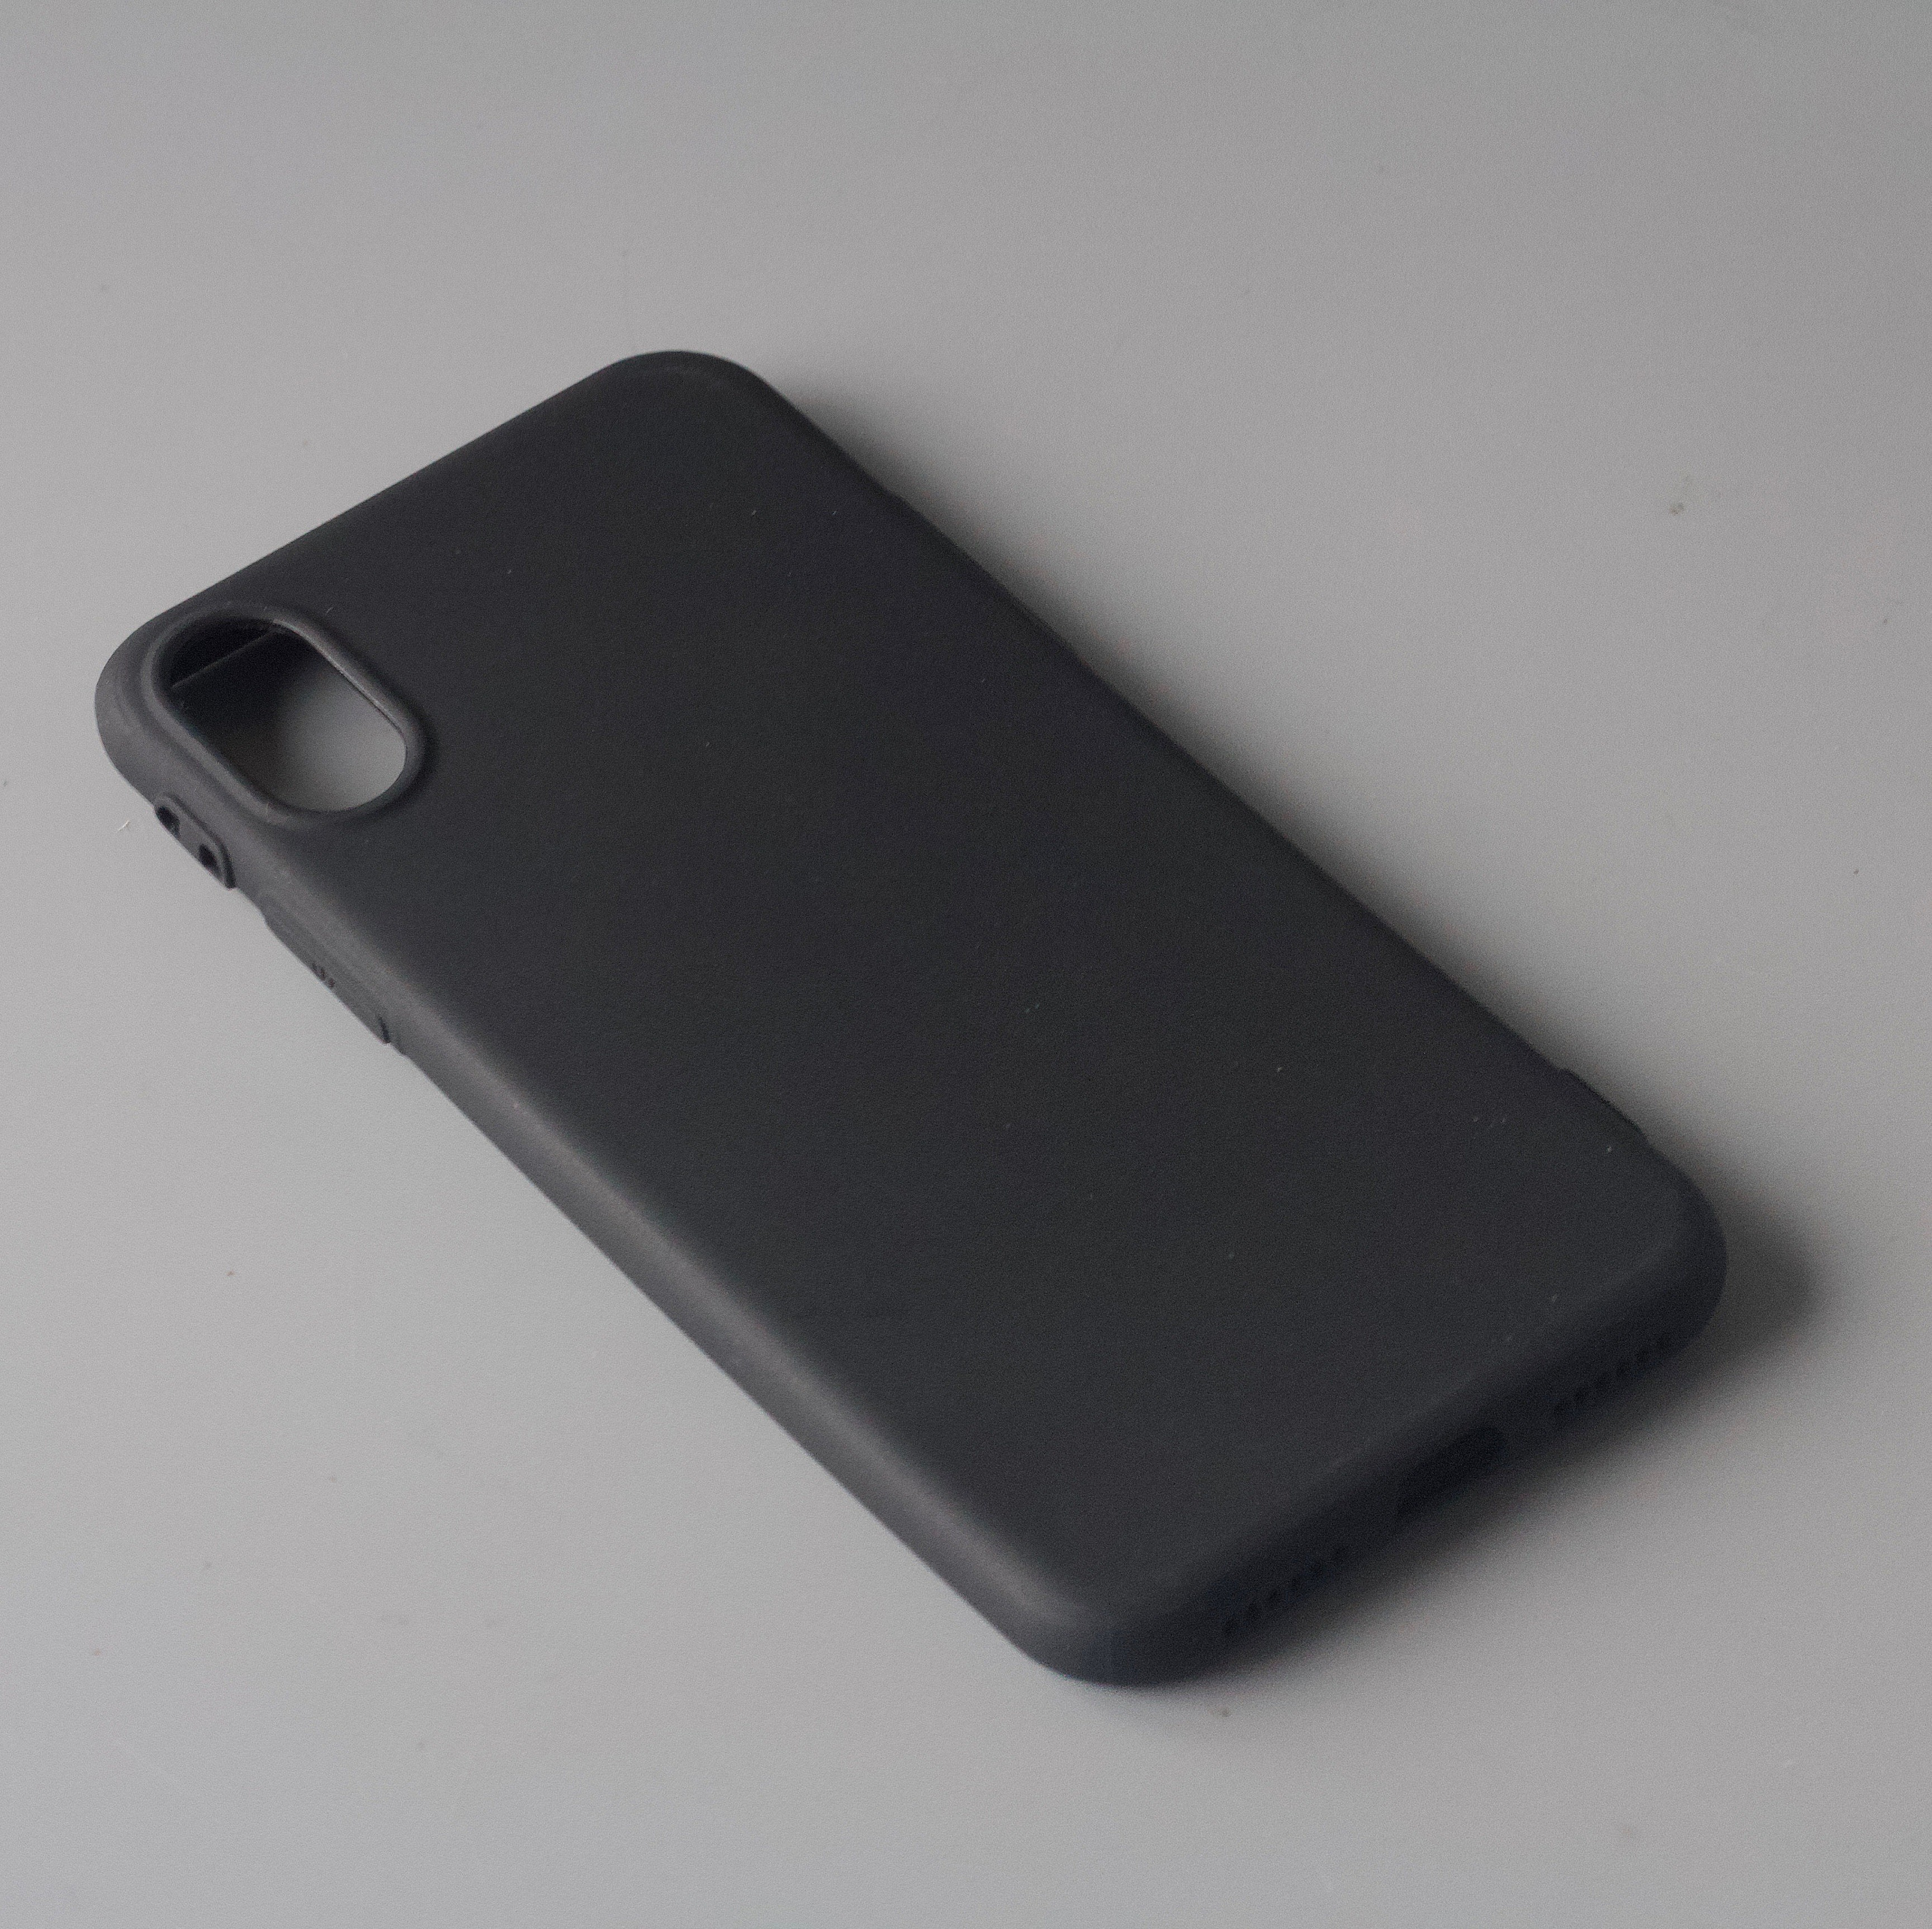 quality design 2bf02 9de7b iPhone XS Matte Black Silicone Case